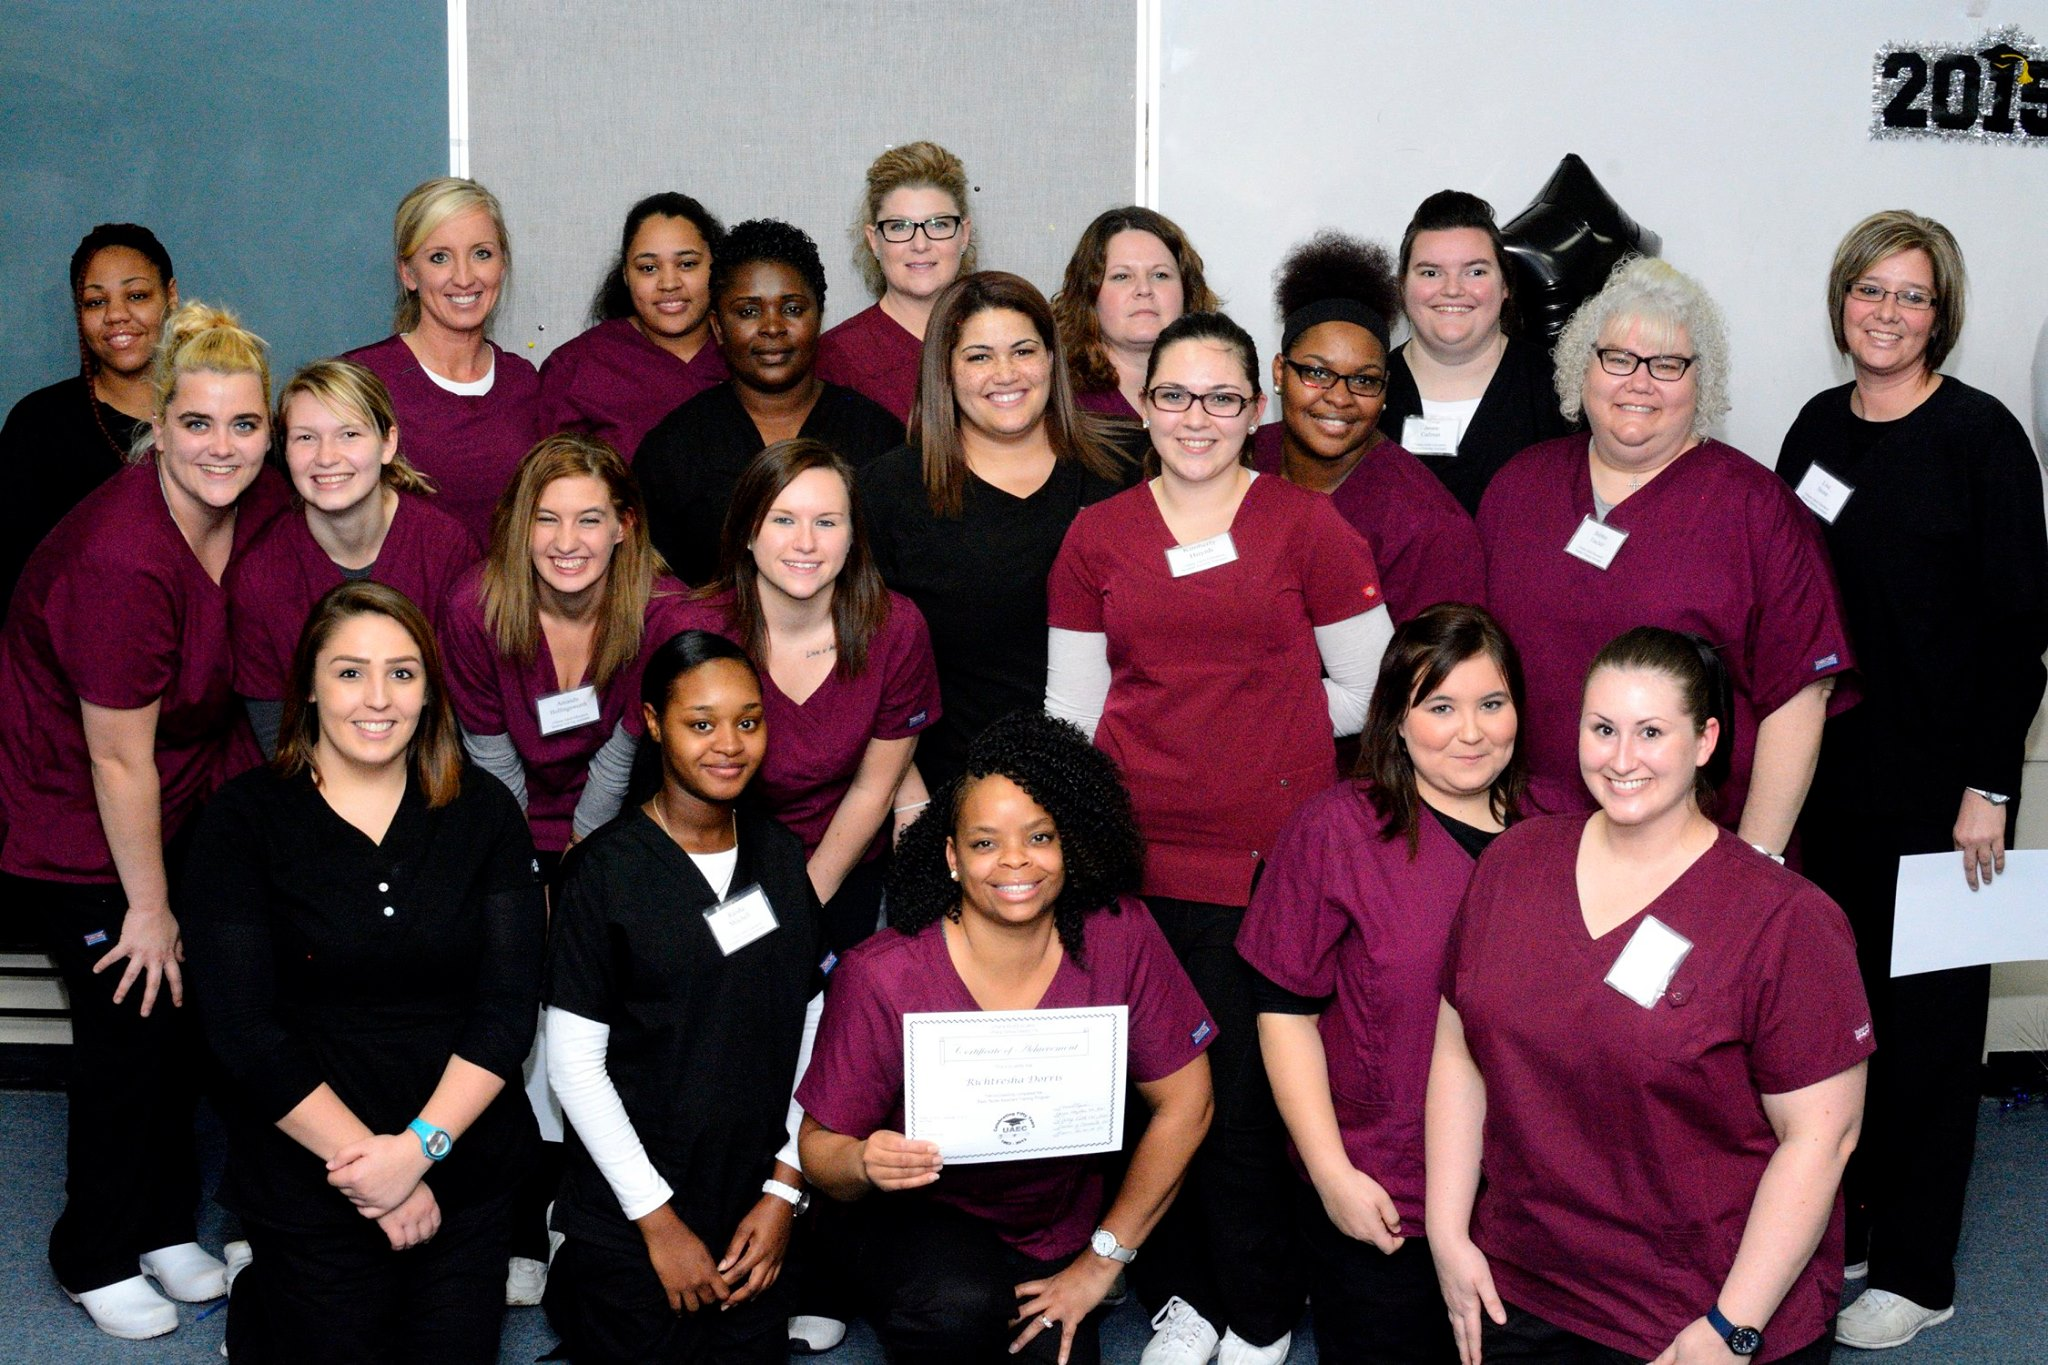 Certified nurse assistant urbana adult education center the urbana adult education center uaec holds two cna classes during the fall semester and two cna classes during the spring semester xflitez Choice Image